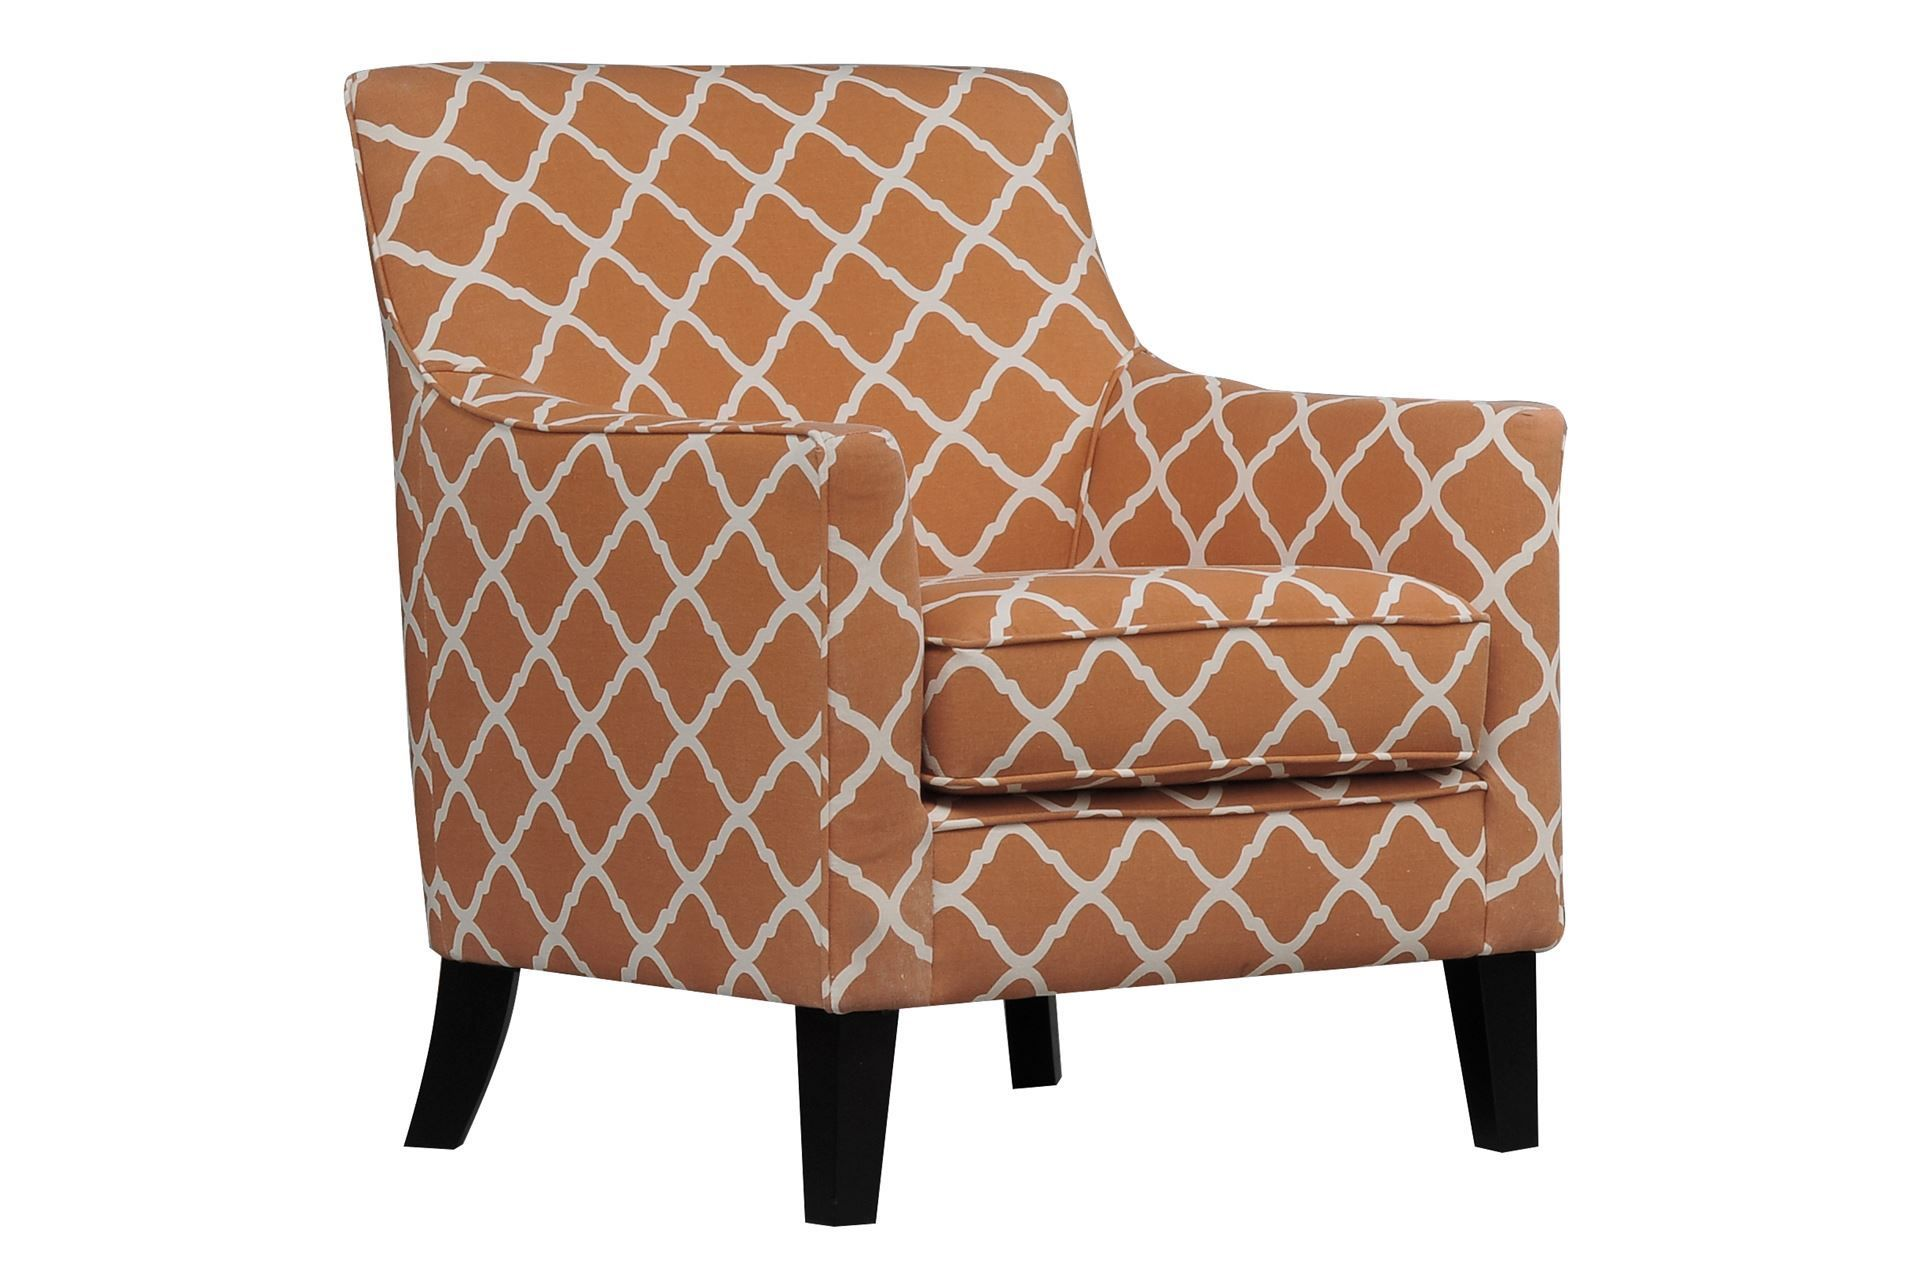 Spice up your space with the Kendall Orange accent chair. The trellis pattern is sure to turn heads. Shop online now. #LivingSpaces  sc 1 st  Pinterest & Spice up your space with the Kendall Orange accent chair. The ...